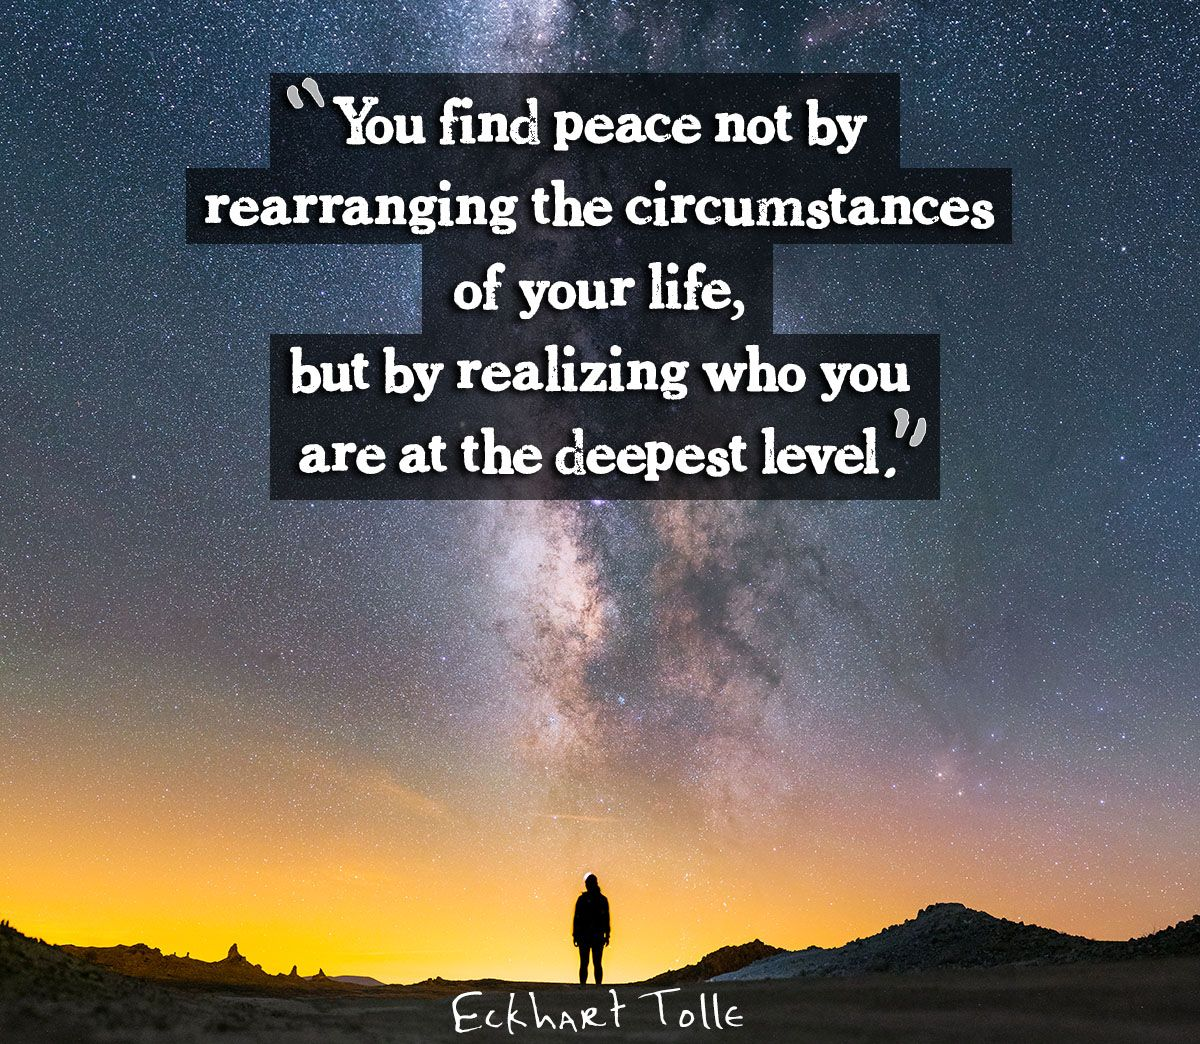 Peaceful Mind Peaceful Life Quotes Eckhart Tolle On Peace  Nature And Mind  Pinterest  Eckhart